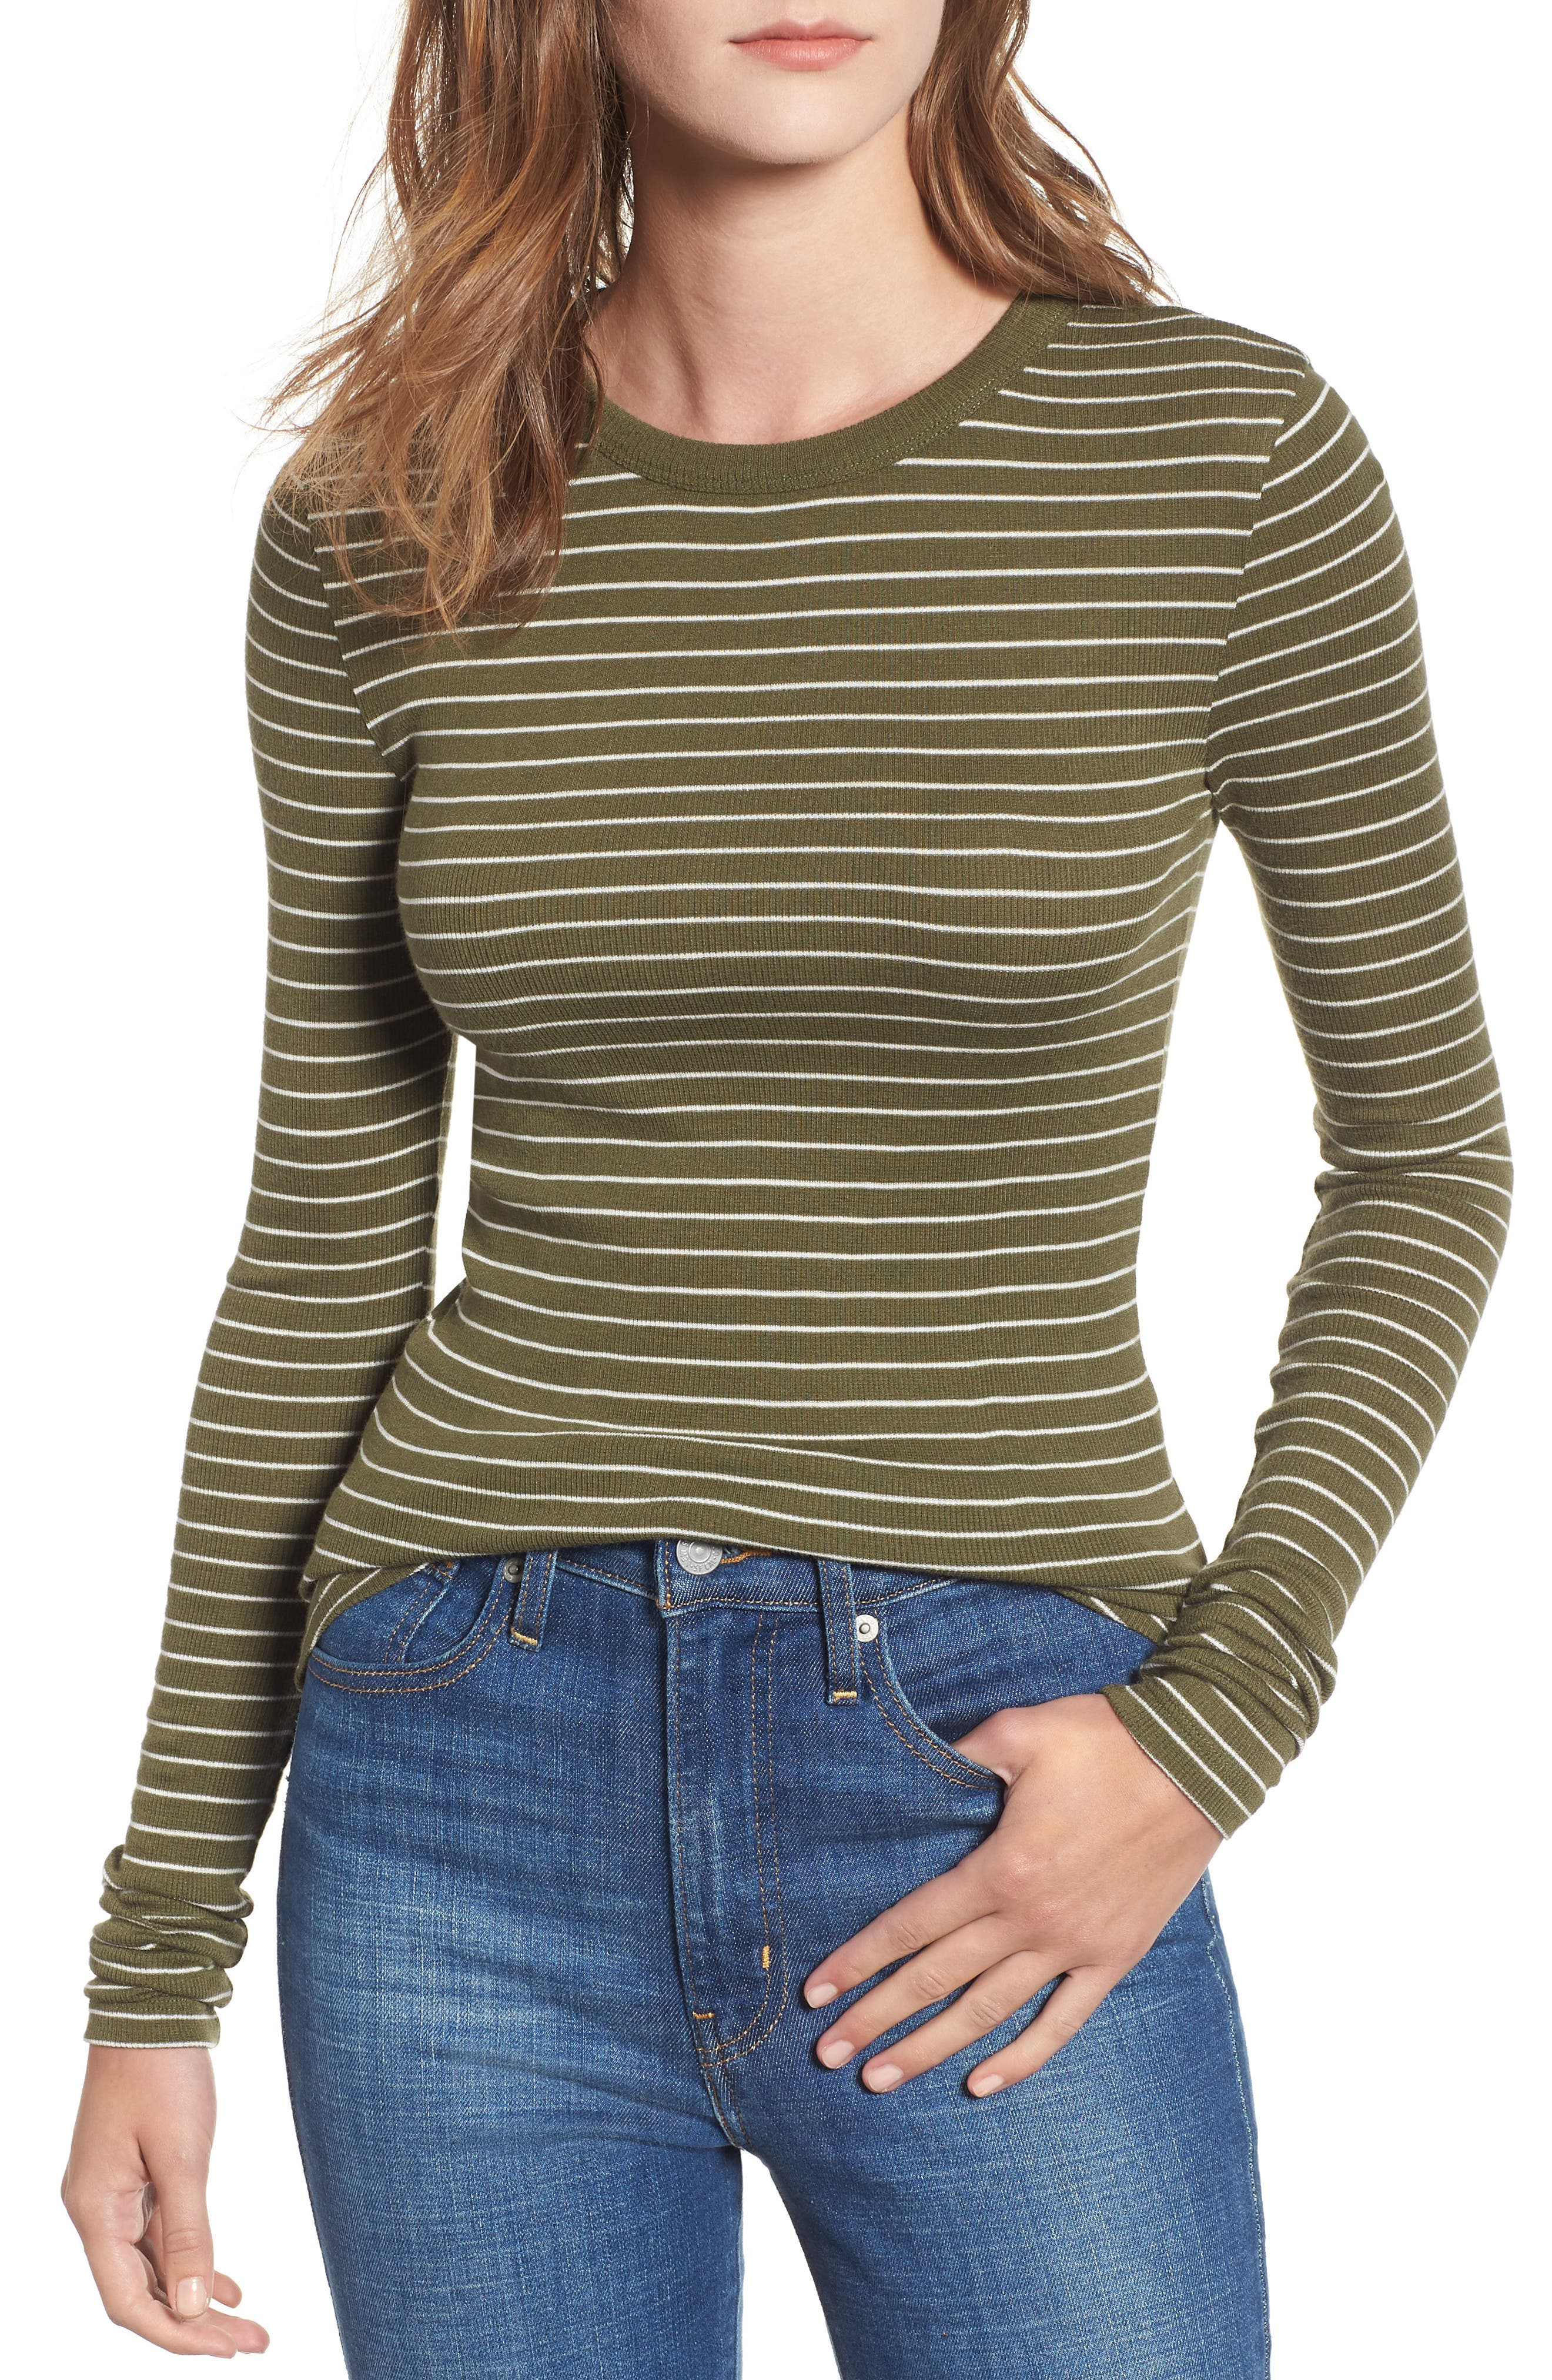 Ribbed Long Sleeve Tee,                             Main thumbnail 1, color,                             OLIVE BURNT TARYN STRIPE